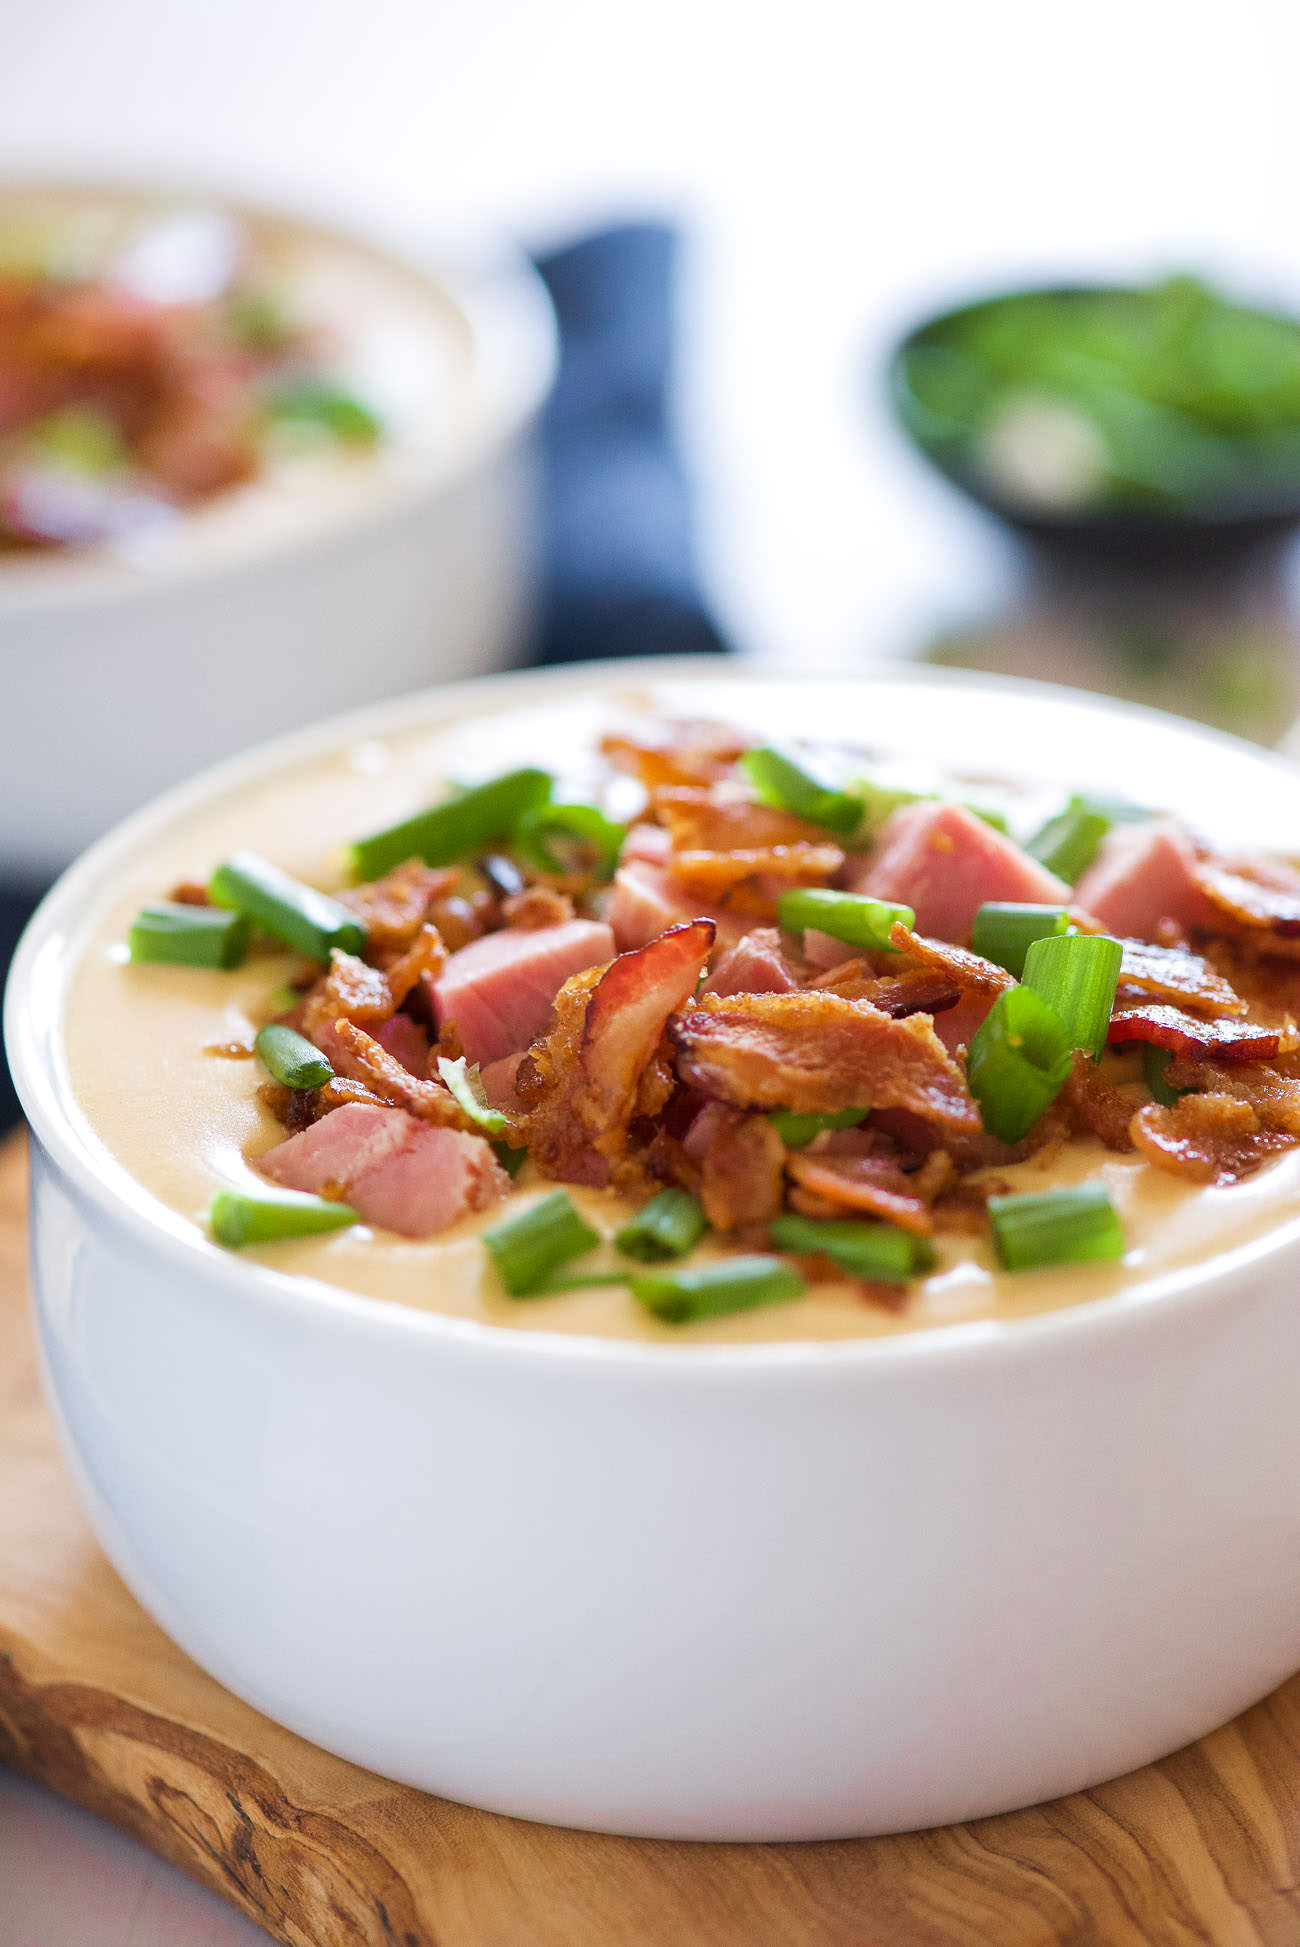 For those cheese and beer lovers - this Ham and White Cheddar Beer Cheese Soup is delicious creamy and full of flavor thanks to two types of cheese, beer, ham and bacon!